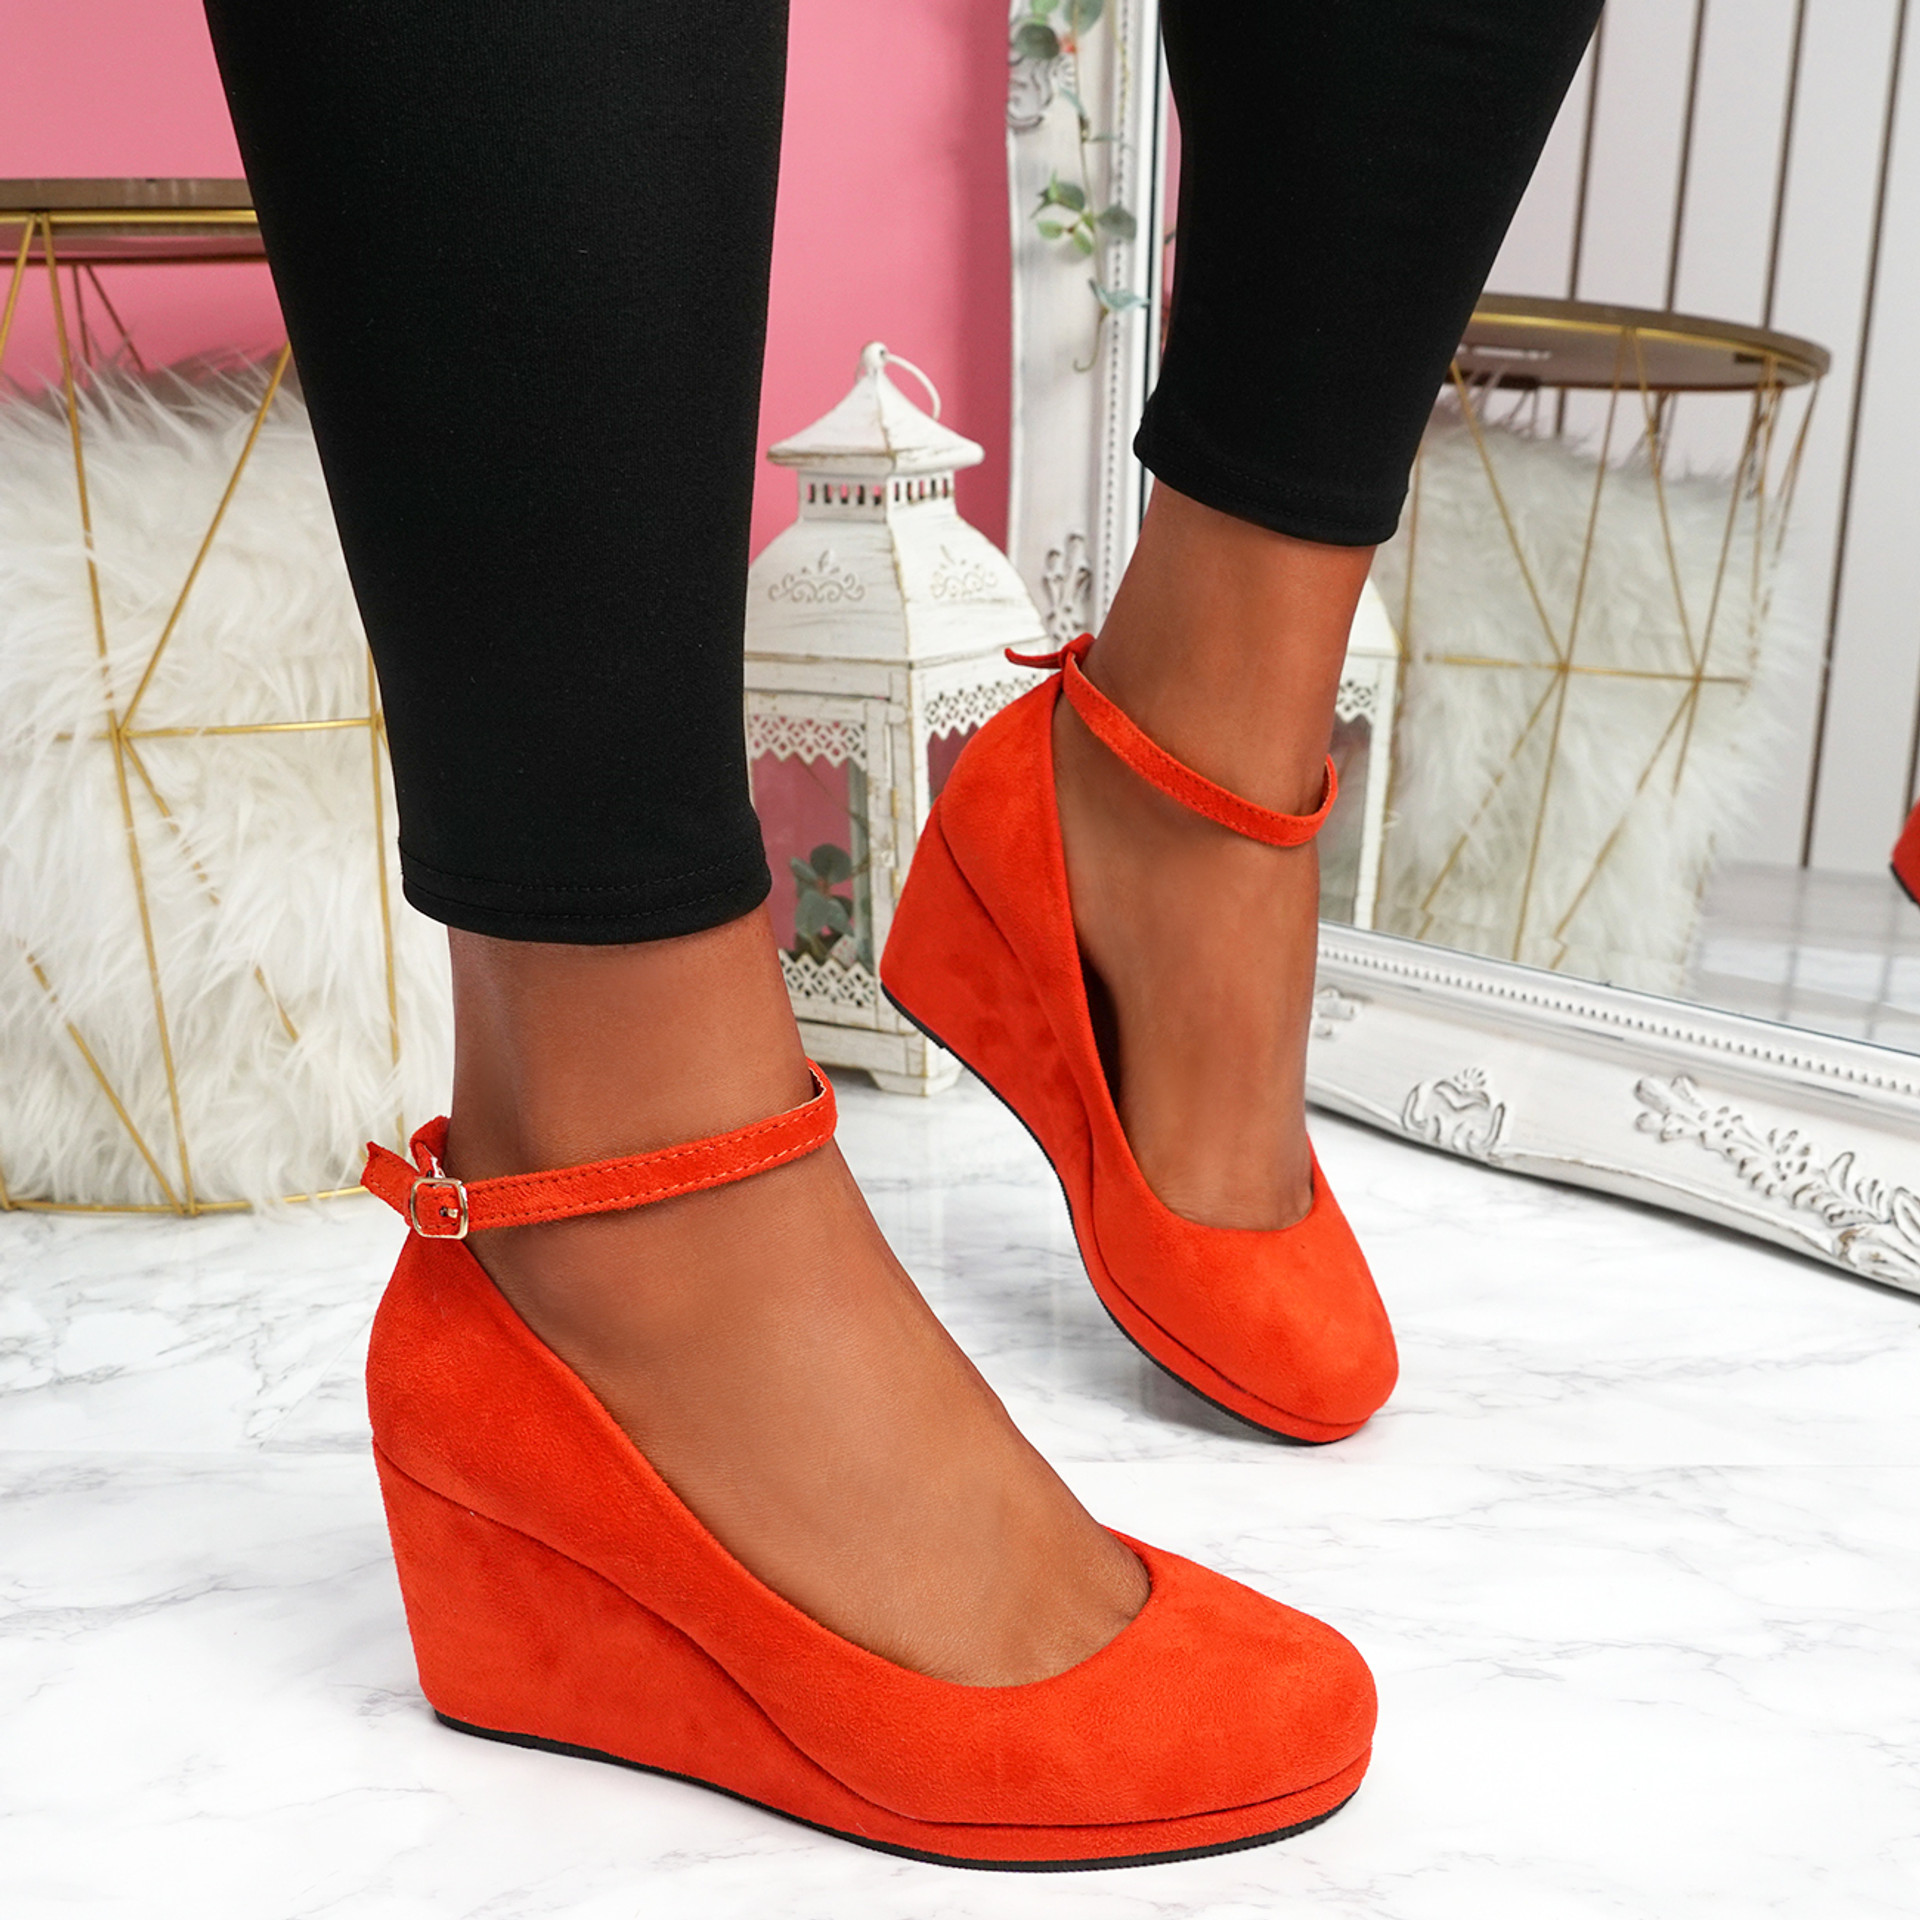 Lorene Red Suede Wedge Pumps Sandals